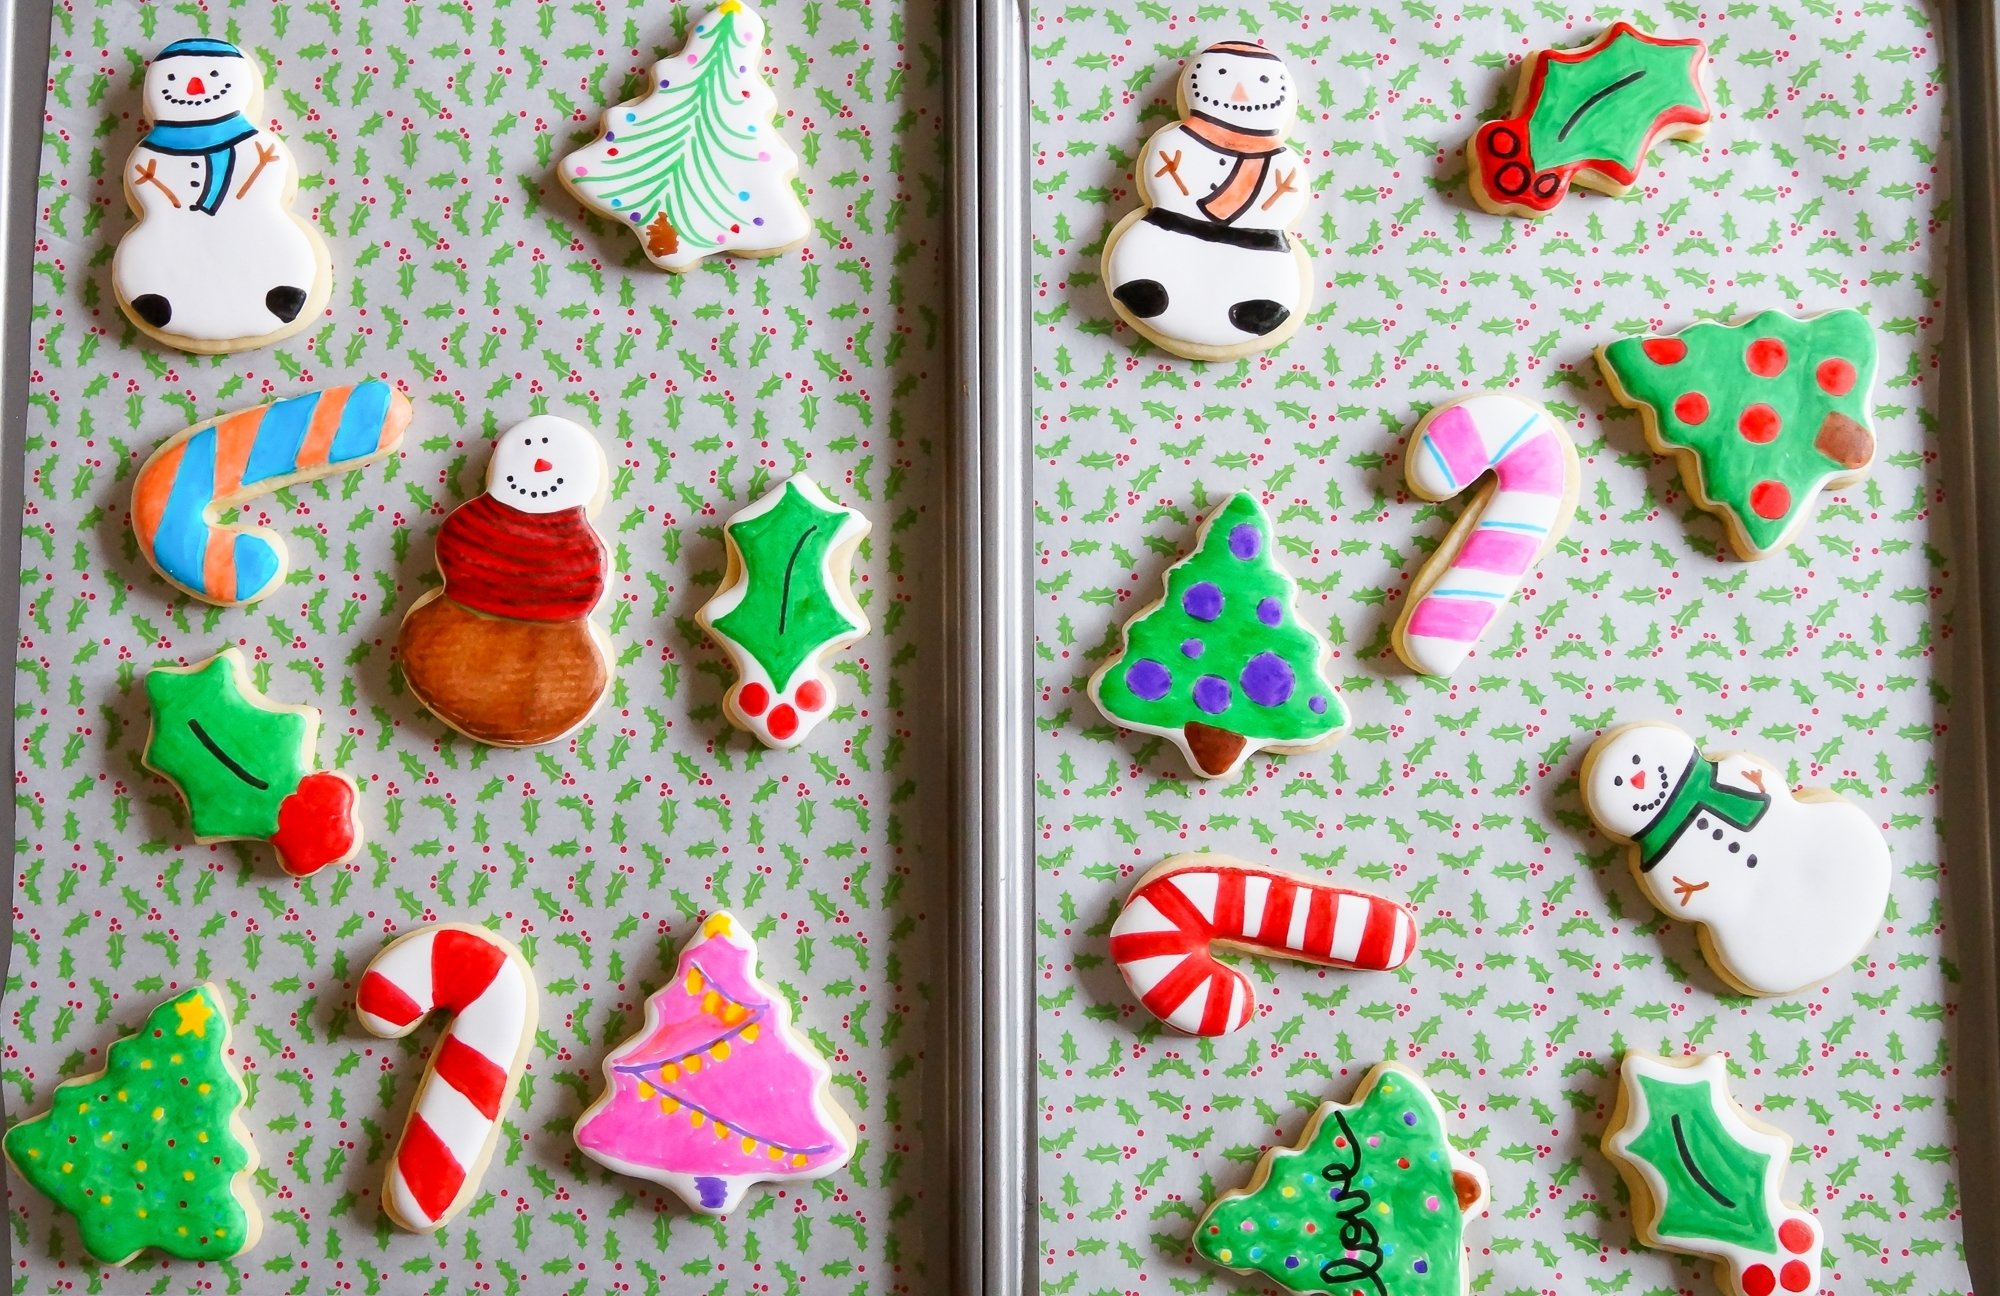 10 Perfect Christmas Cookie Ideas For Kids easy cookie decorating with kids the pioneer woman 2021